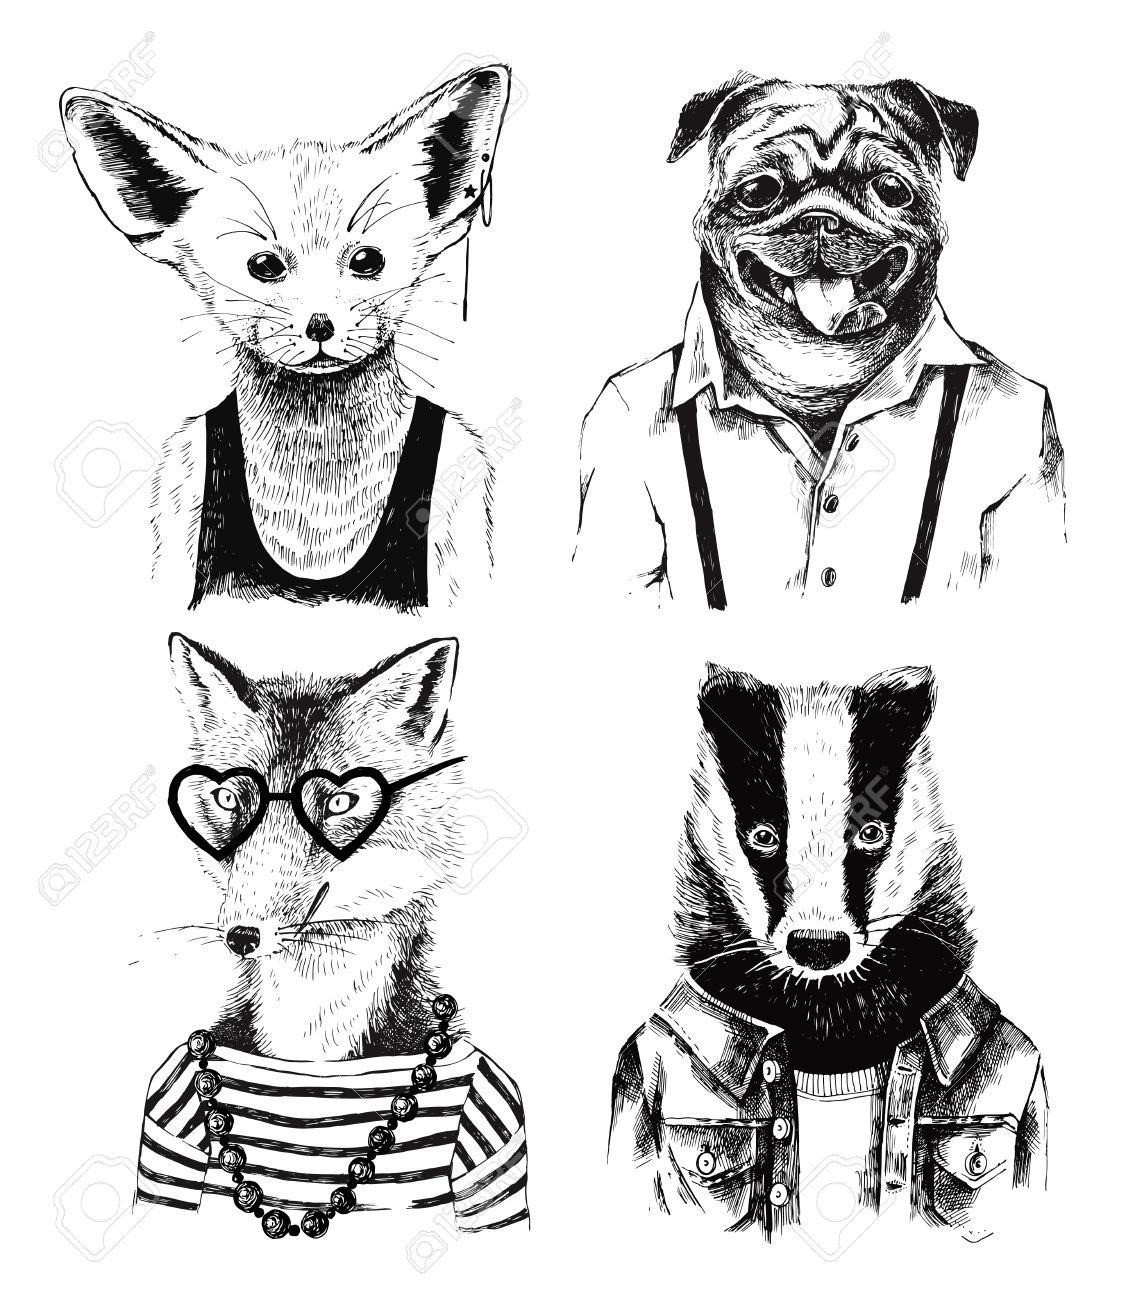 Hand drawn dressed up black and white badger in hipster style - 64111249